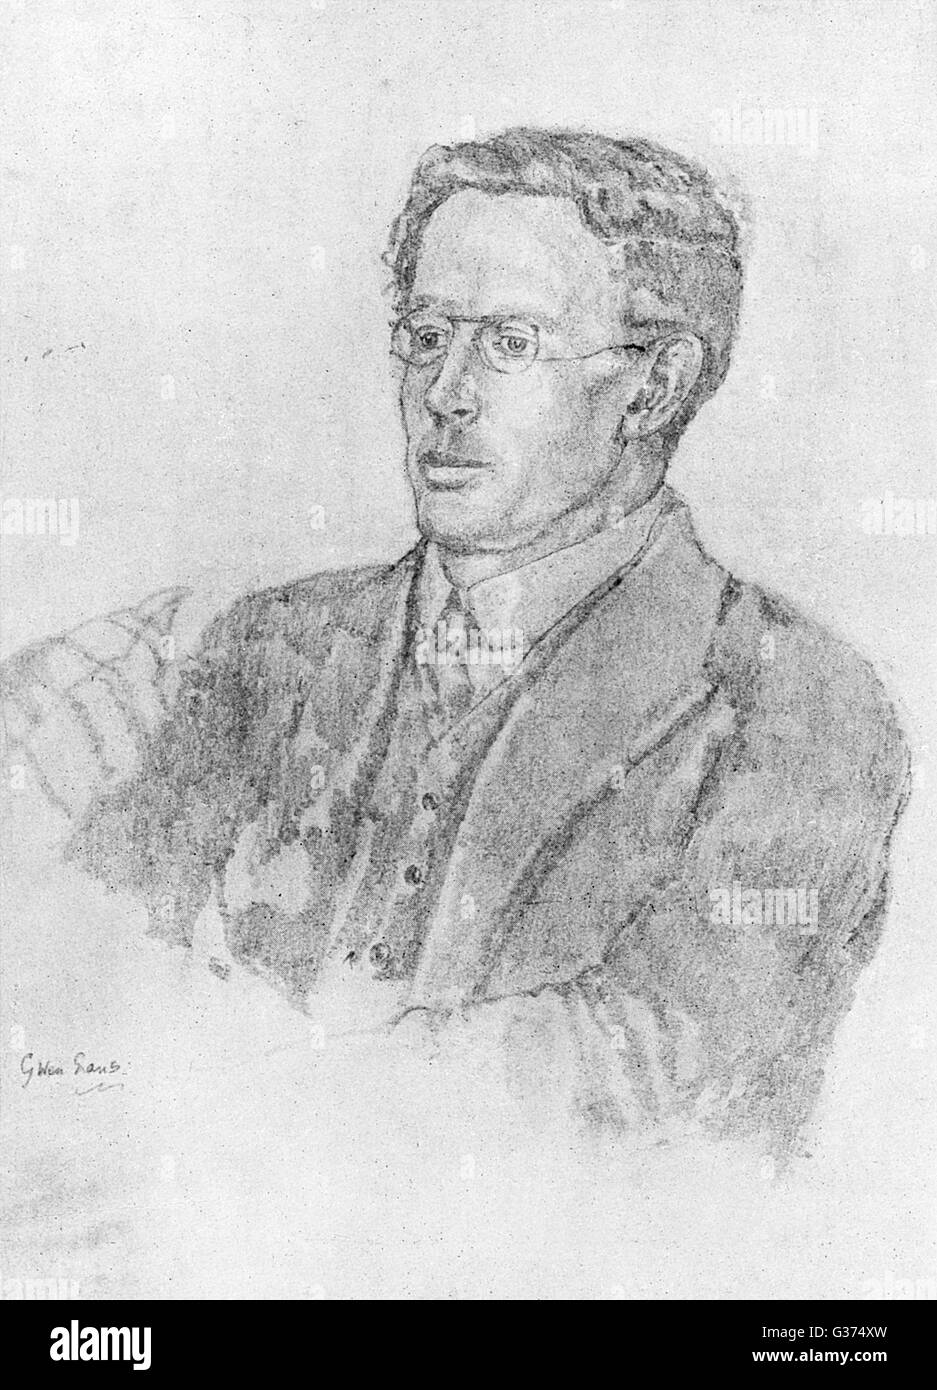 CHARLES WILLIAMS writer and scholar, author of  novels of the supernatural  such as 'War in heaven' and - Stock Image